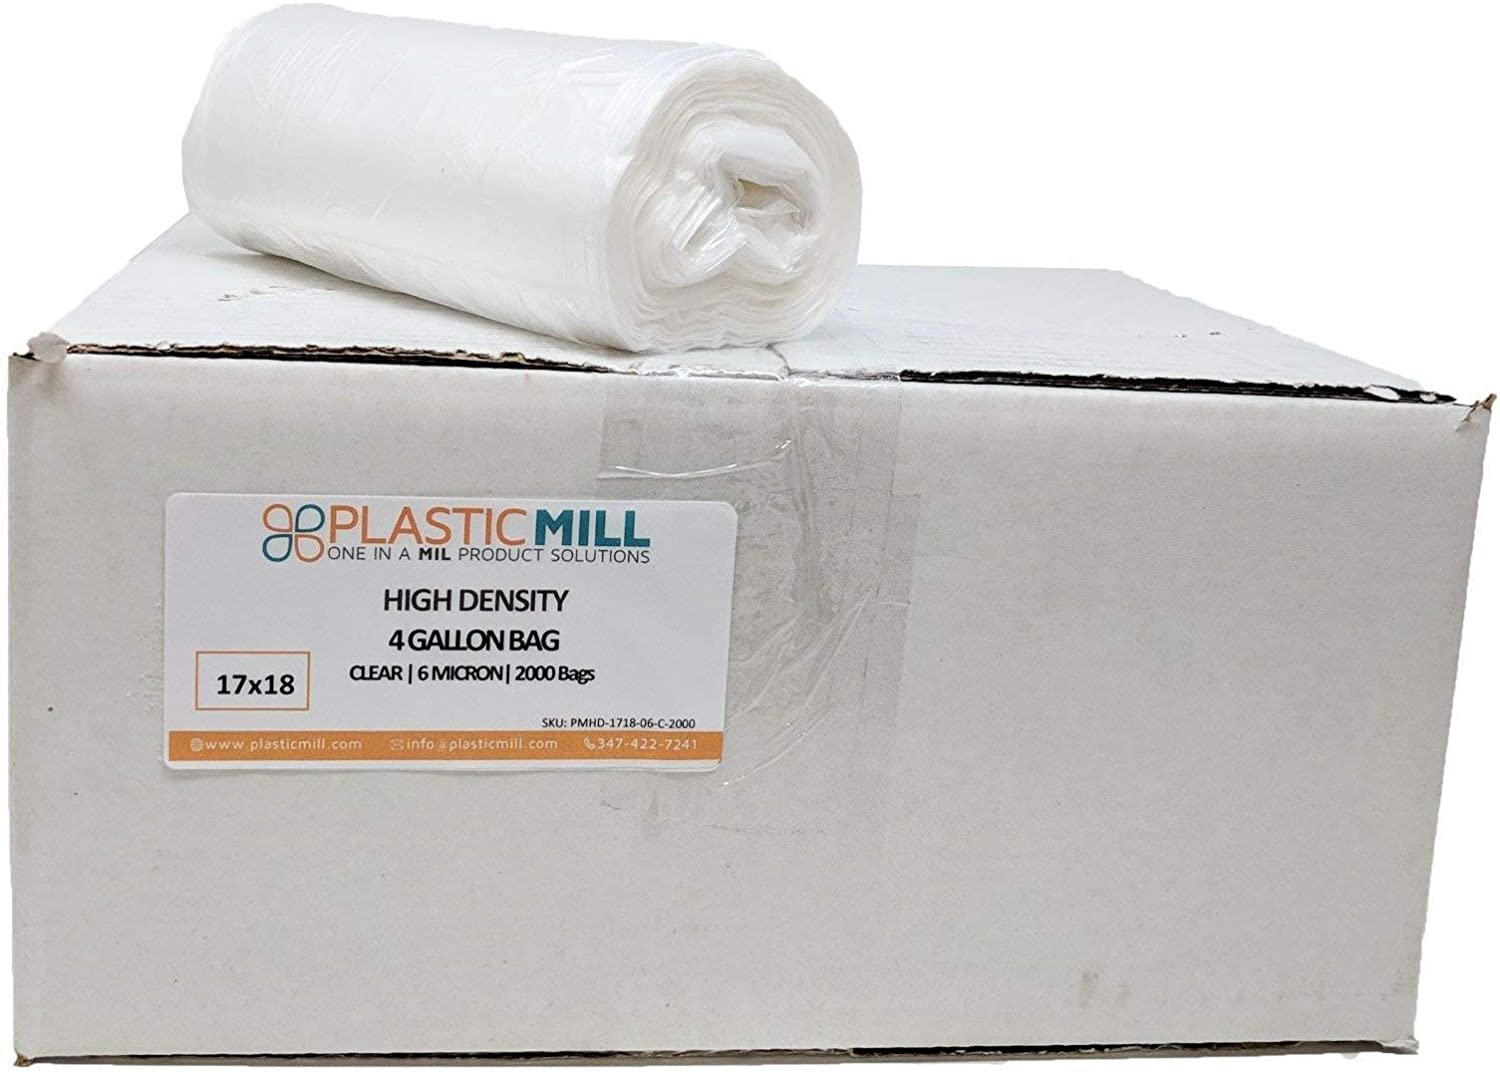 PlasticMill 4 Gallon Garbage Bags, High Density: Clear, 6 Micron, 17x18, 2000 Bags.